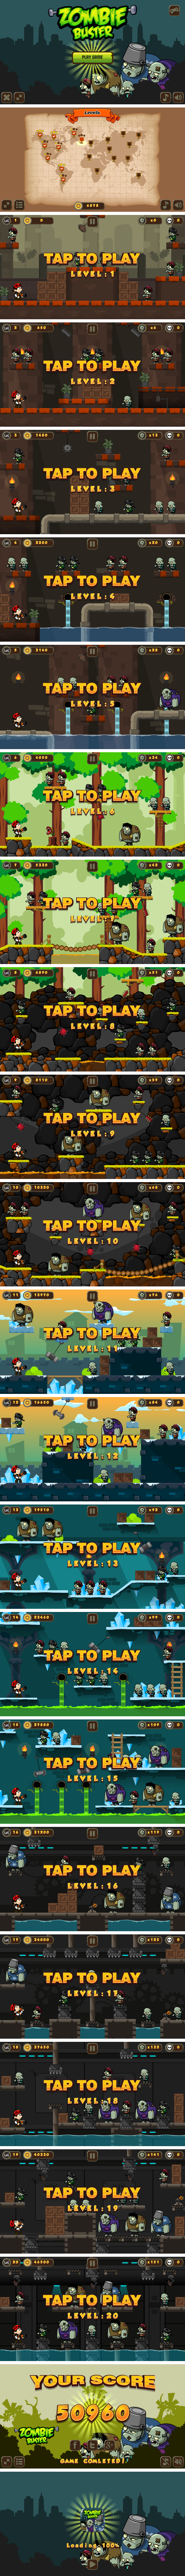 Zombie Buster - HTML5 Game 20 Levels + Mobile Version! (Construct 3 | Construct 2 | Capx) - 3